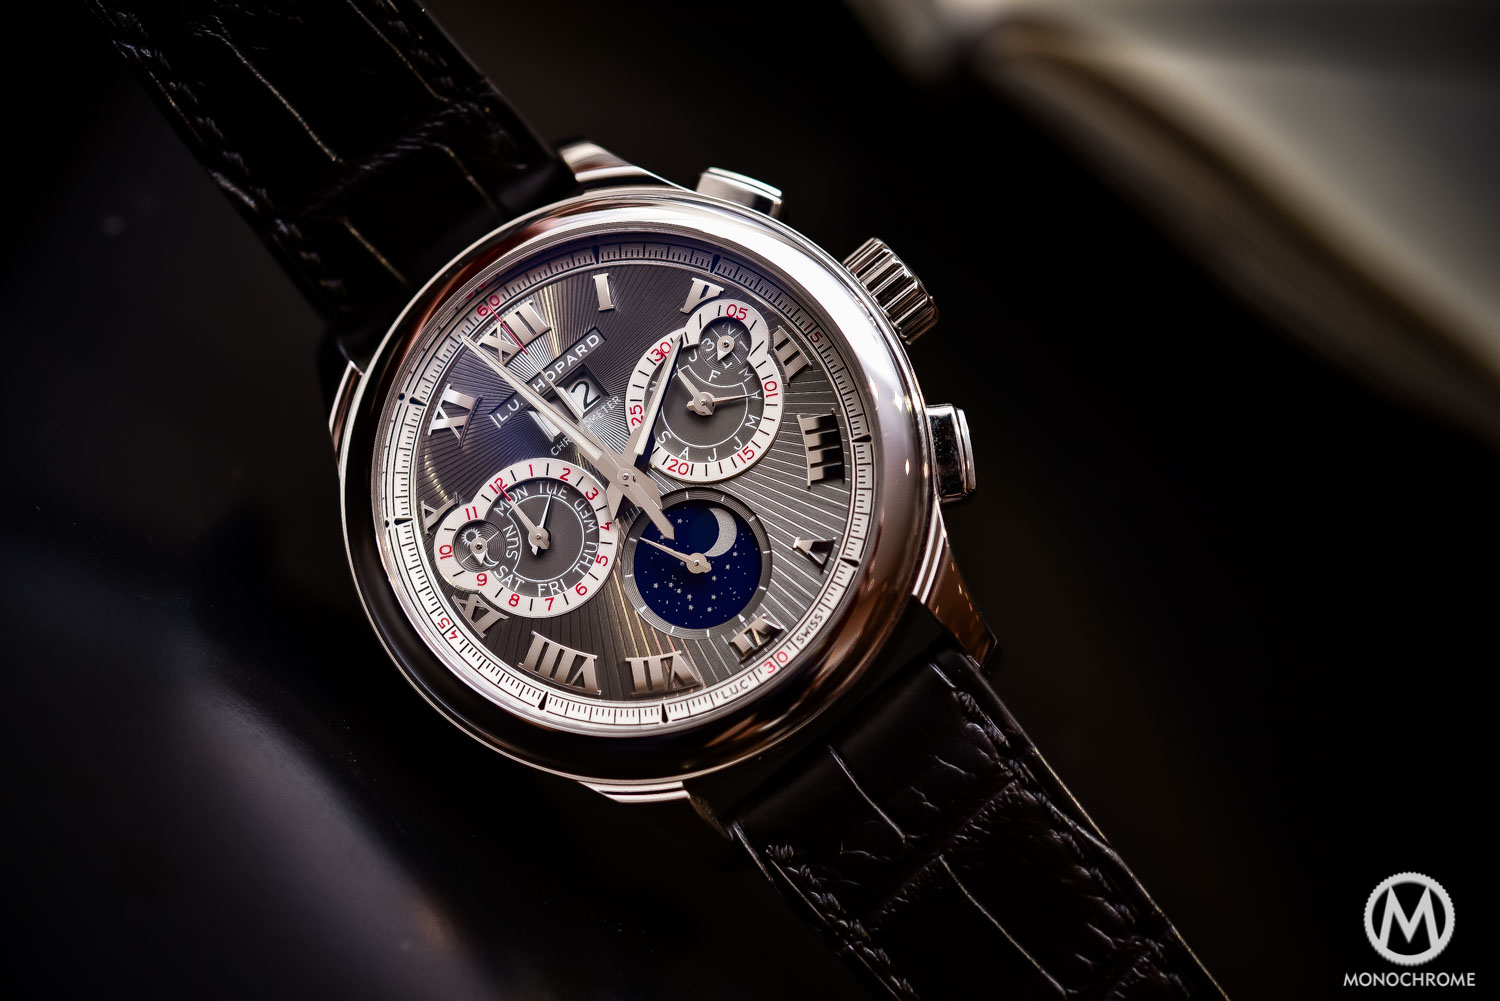 Chopard L.U.C Perpetual Chrono Fairmined white gold - Baselworld 2016 - 2